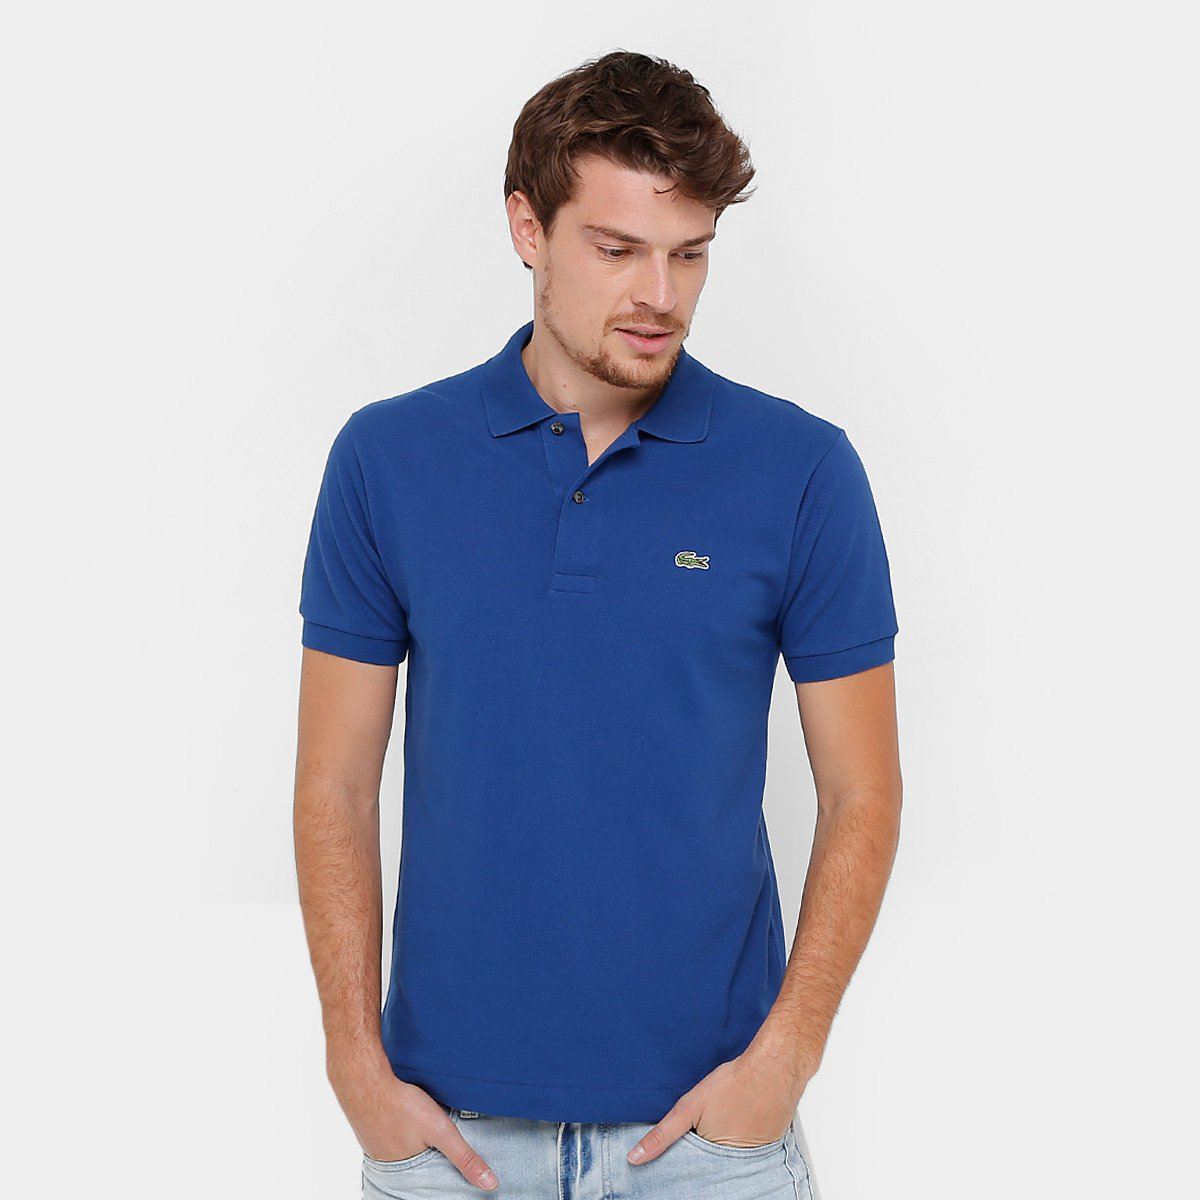 Camisa Polo Lacoste Original Fit Masculina ee89942c8dd7d